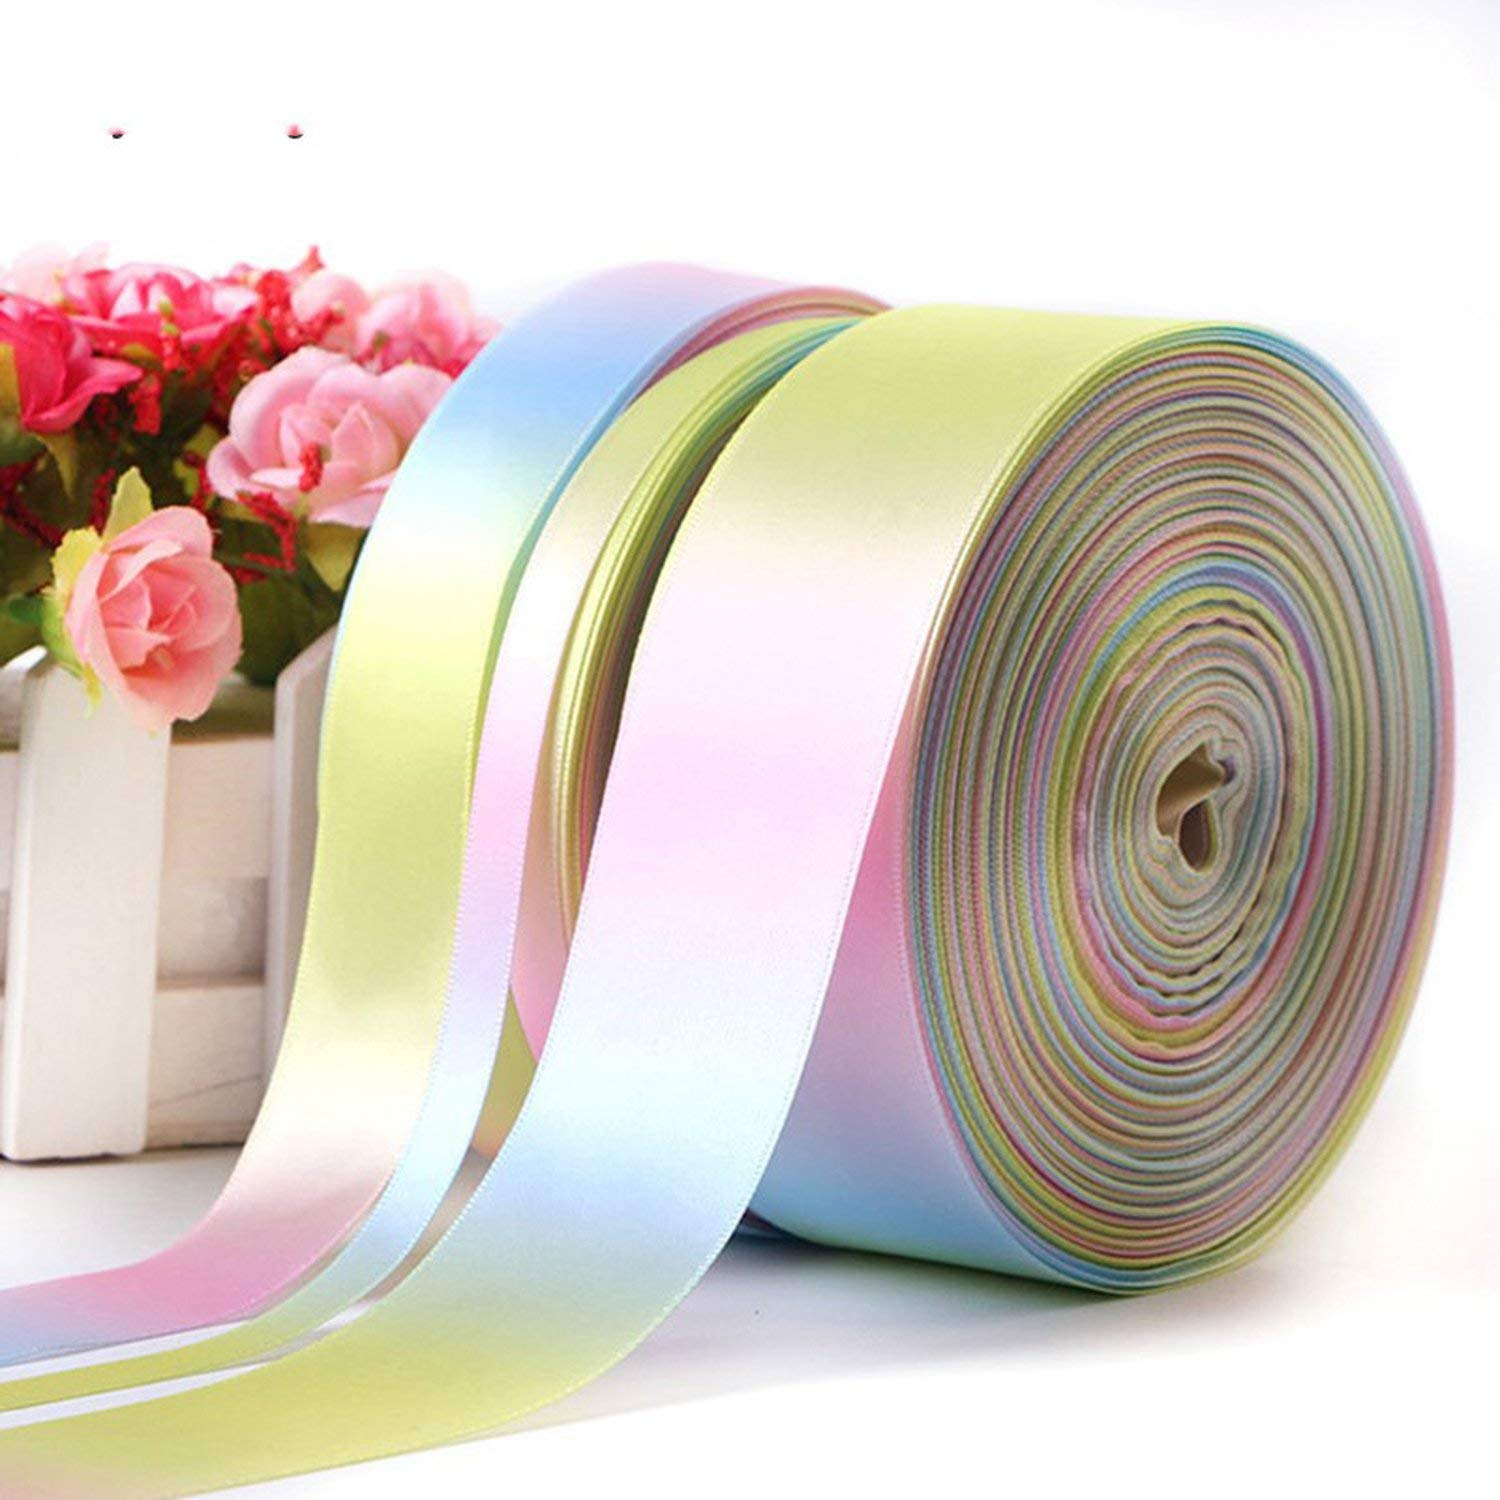 Party Streamers Rainbow Ribbon Printed Polyester Satin Ribbons Handmade Materials,50mm by AYO-LE streamers (Image #2)